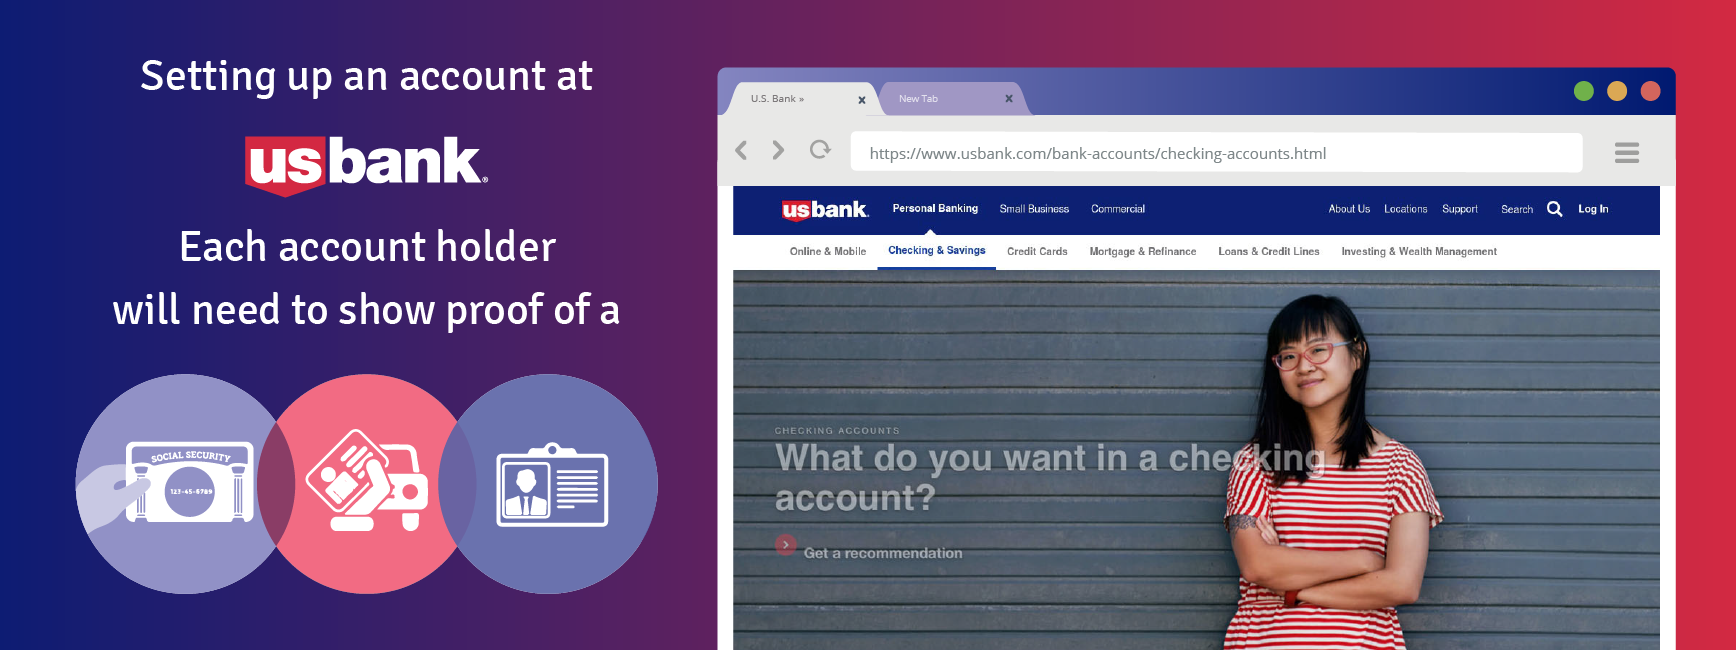 Setting up an account a U.S. Bank